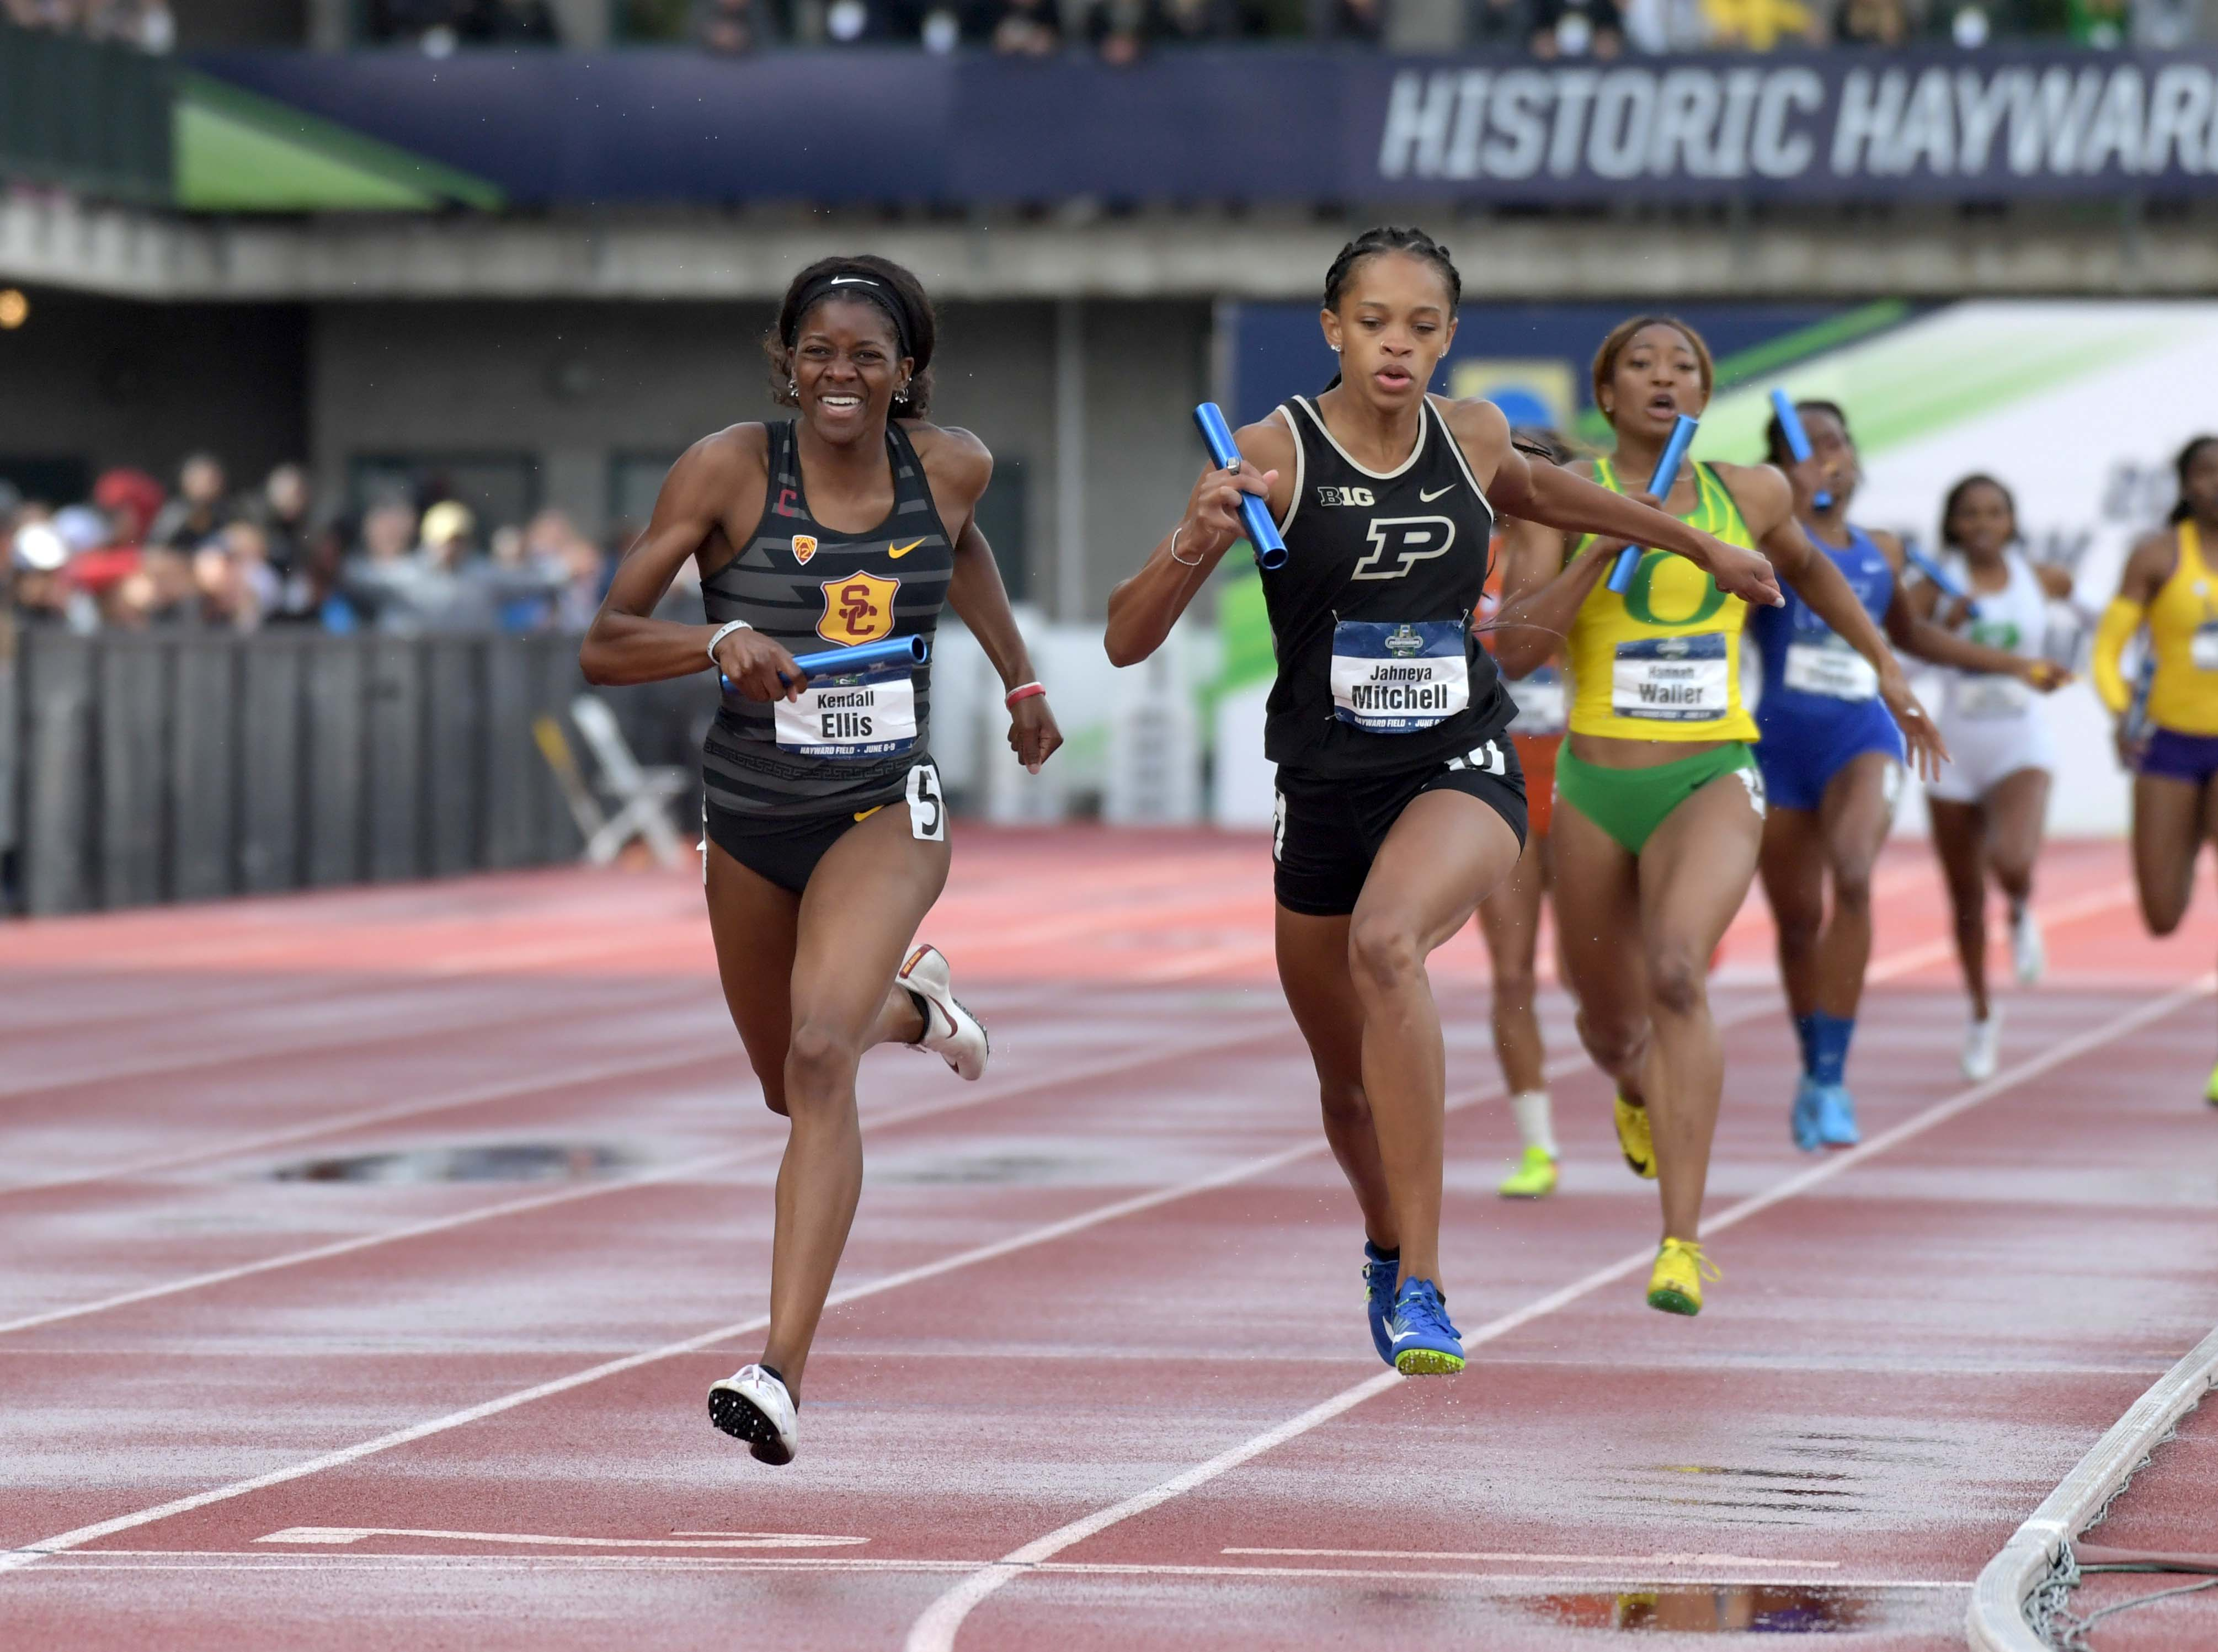 NCAA Track and Field Championships: 5 key athletes and events to watch at Hayward Field